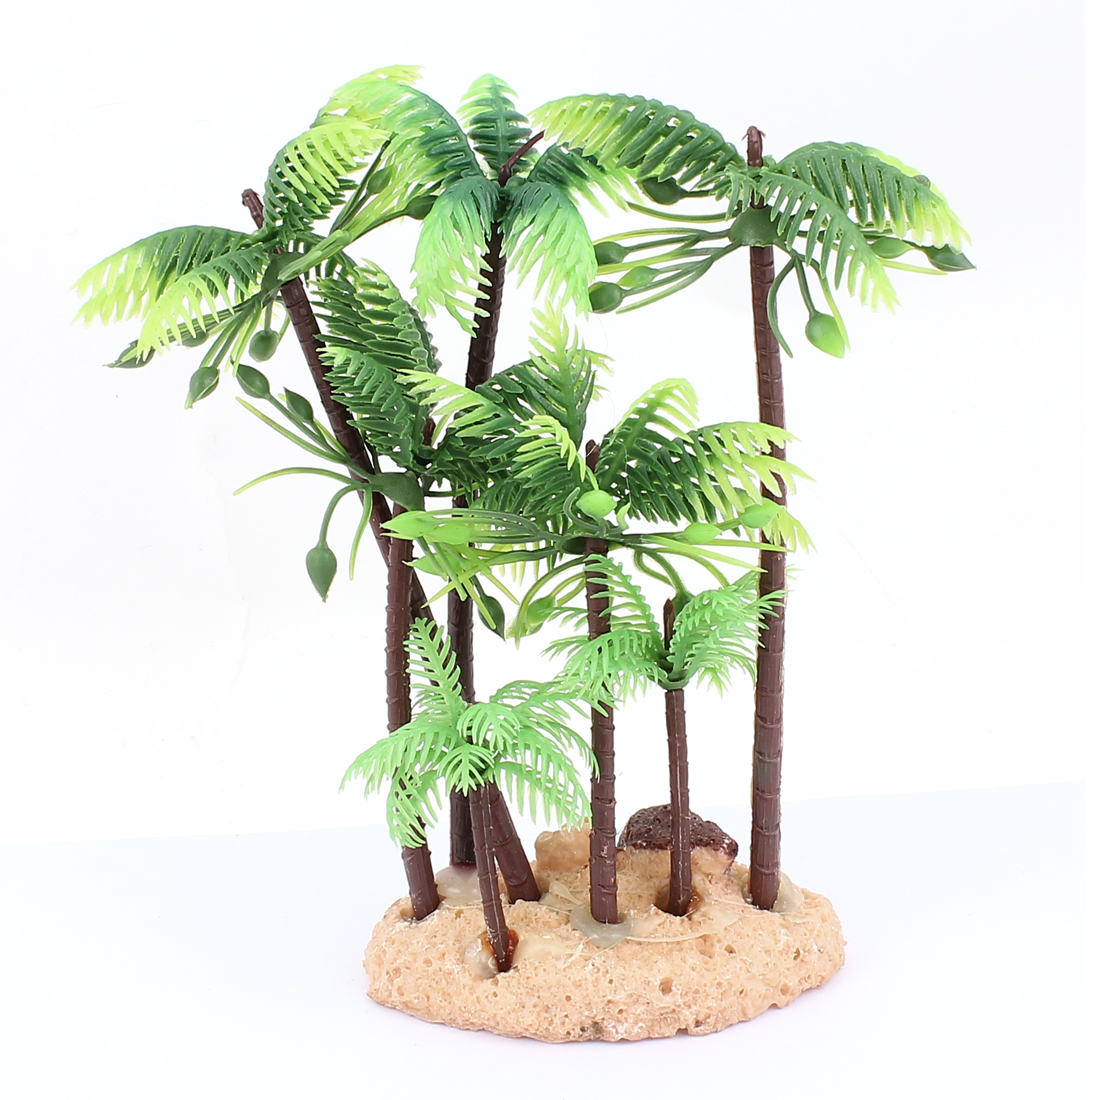 Aquarium Plastic Green Coconut Tree Water Grass Plant Decoration